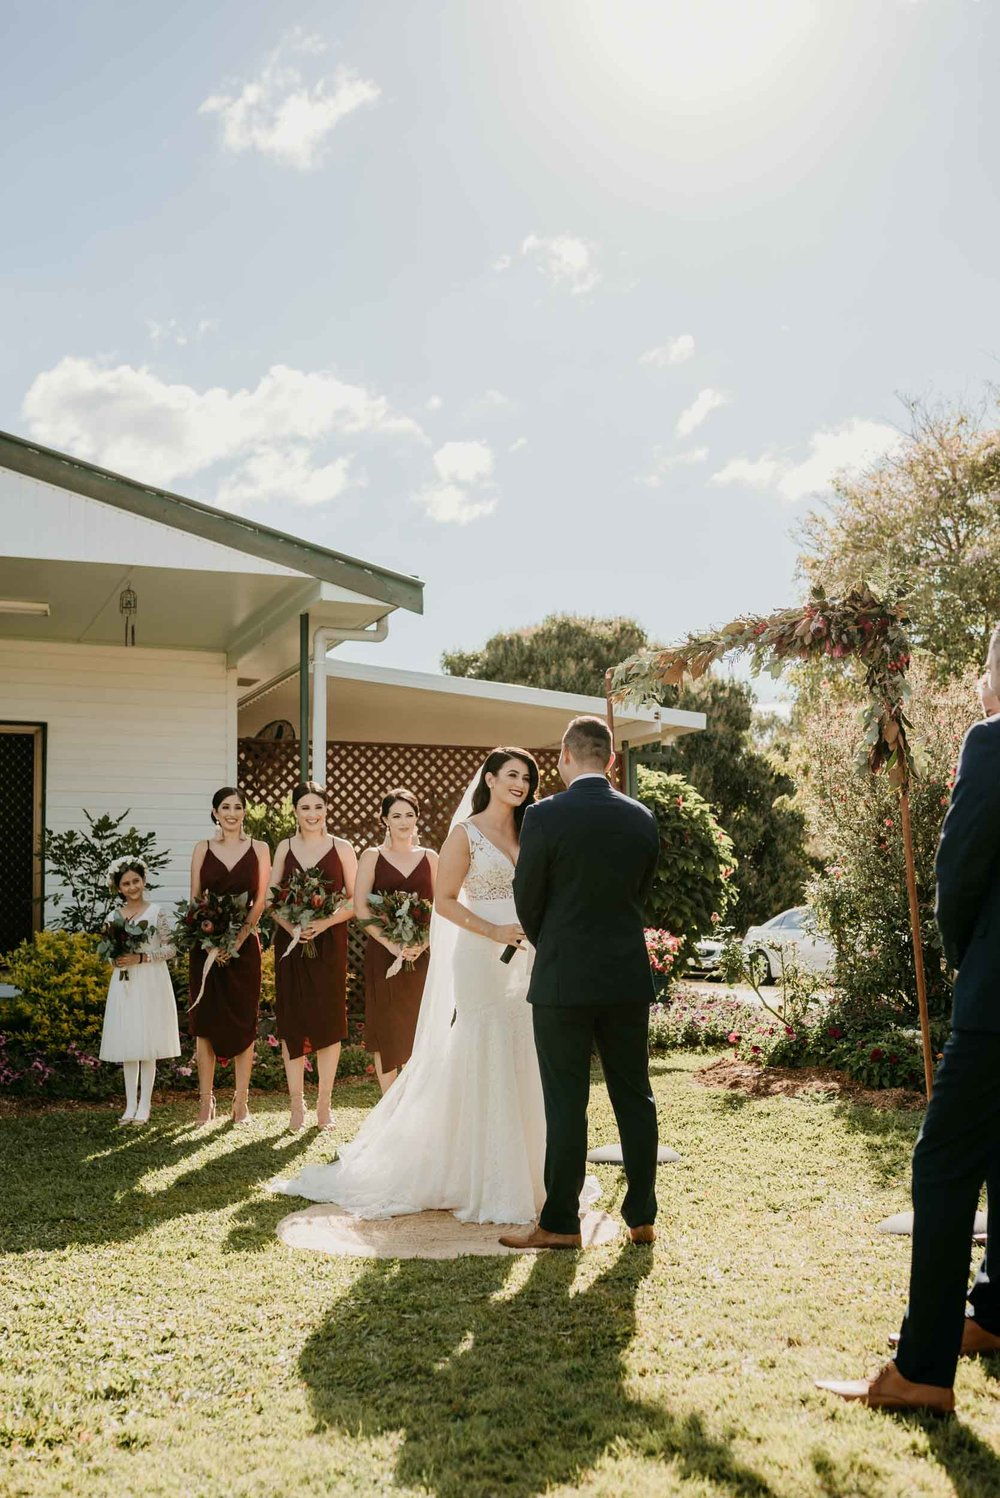 The Raw Photographer - Cairns Wedding Photographer - Atherton Tablelands - Mareeba farm Wedding - Irene Costa's Devine Bridal - Candid - Photo Package-25.jpg